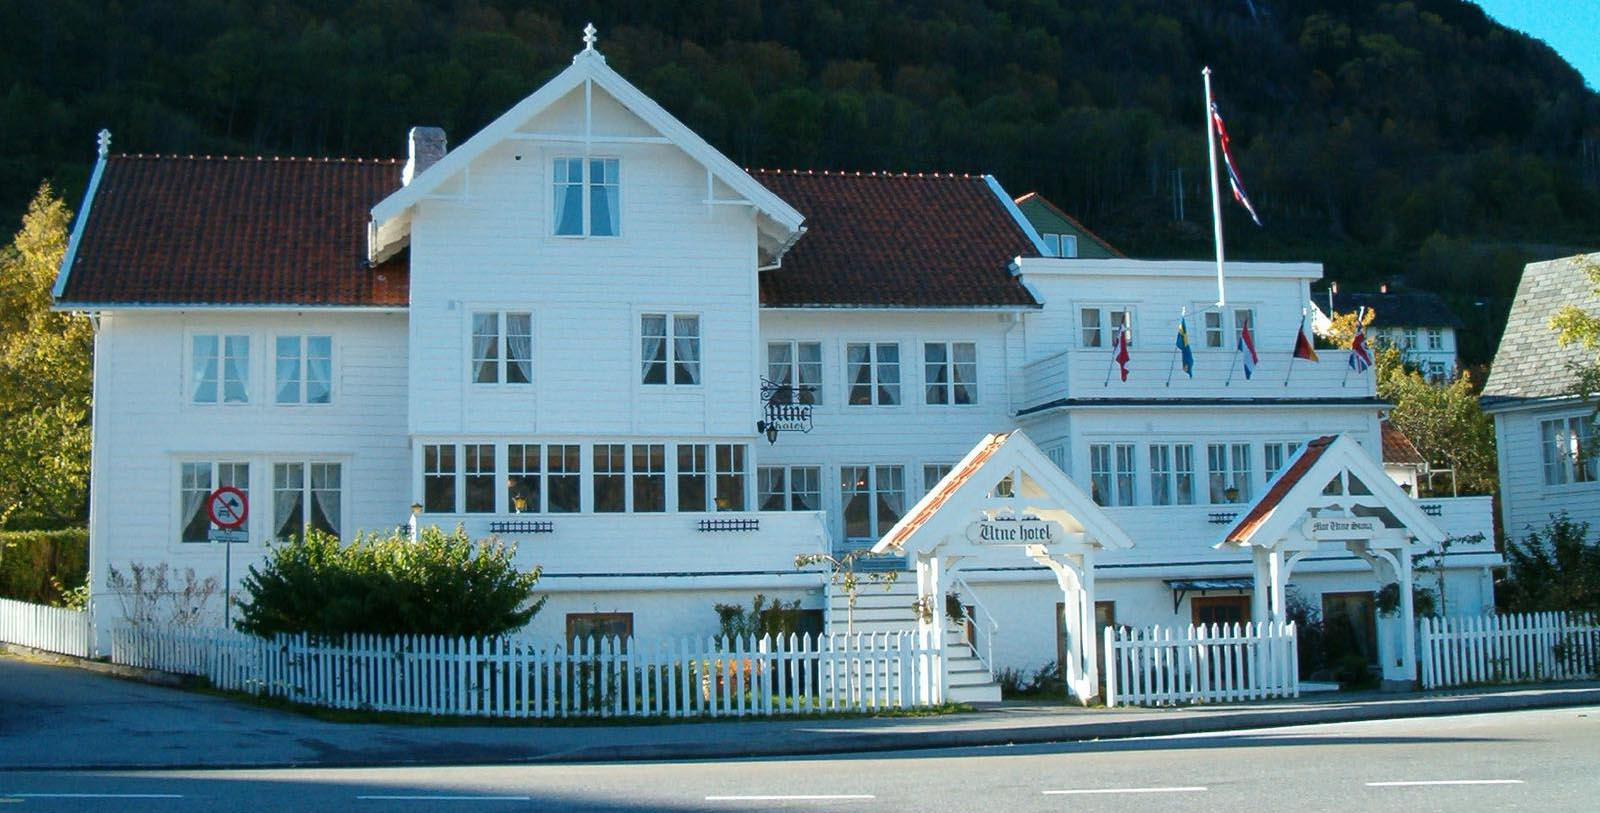 Image of Hotel Exterior Utne Hotel, 1722, Member of Historic Hotels Worldwide, in Utne, Norway, Special Offers, Discounted Rates, Families, Romantic Escape, Honeymoons, Anniversaries, Reunions